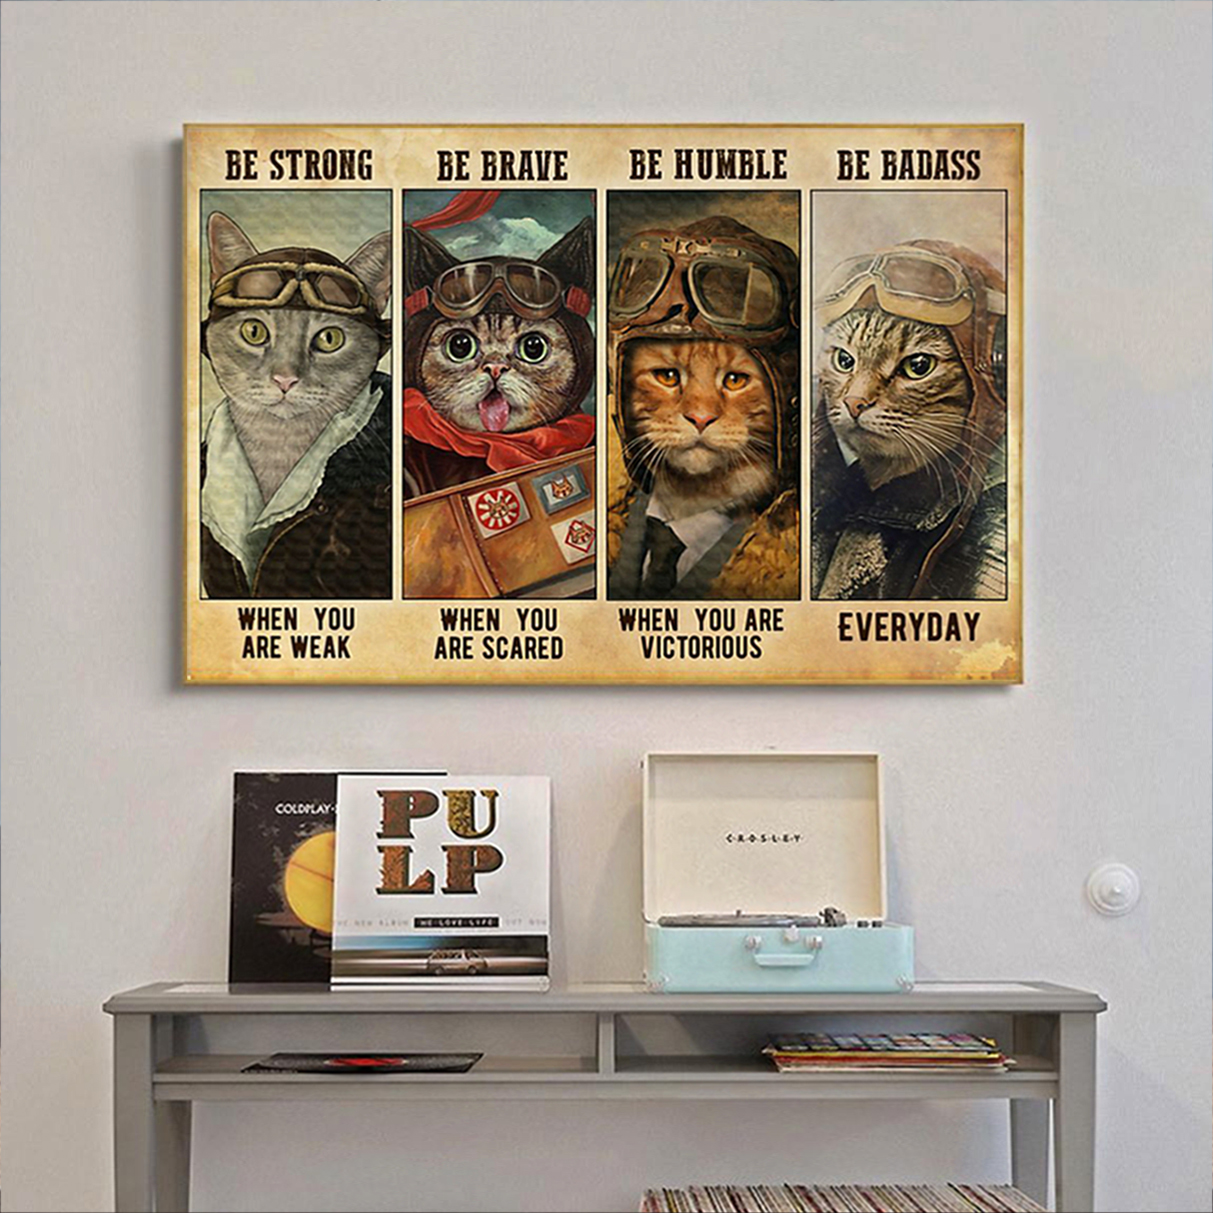 Cat pilot be strong be brave be humble be badass poster A2